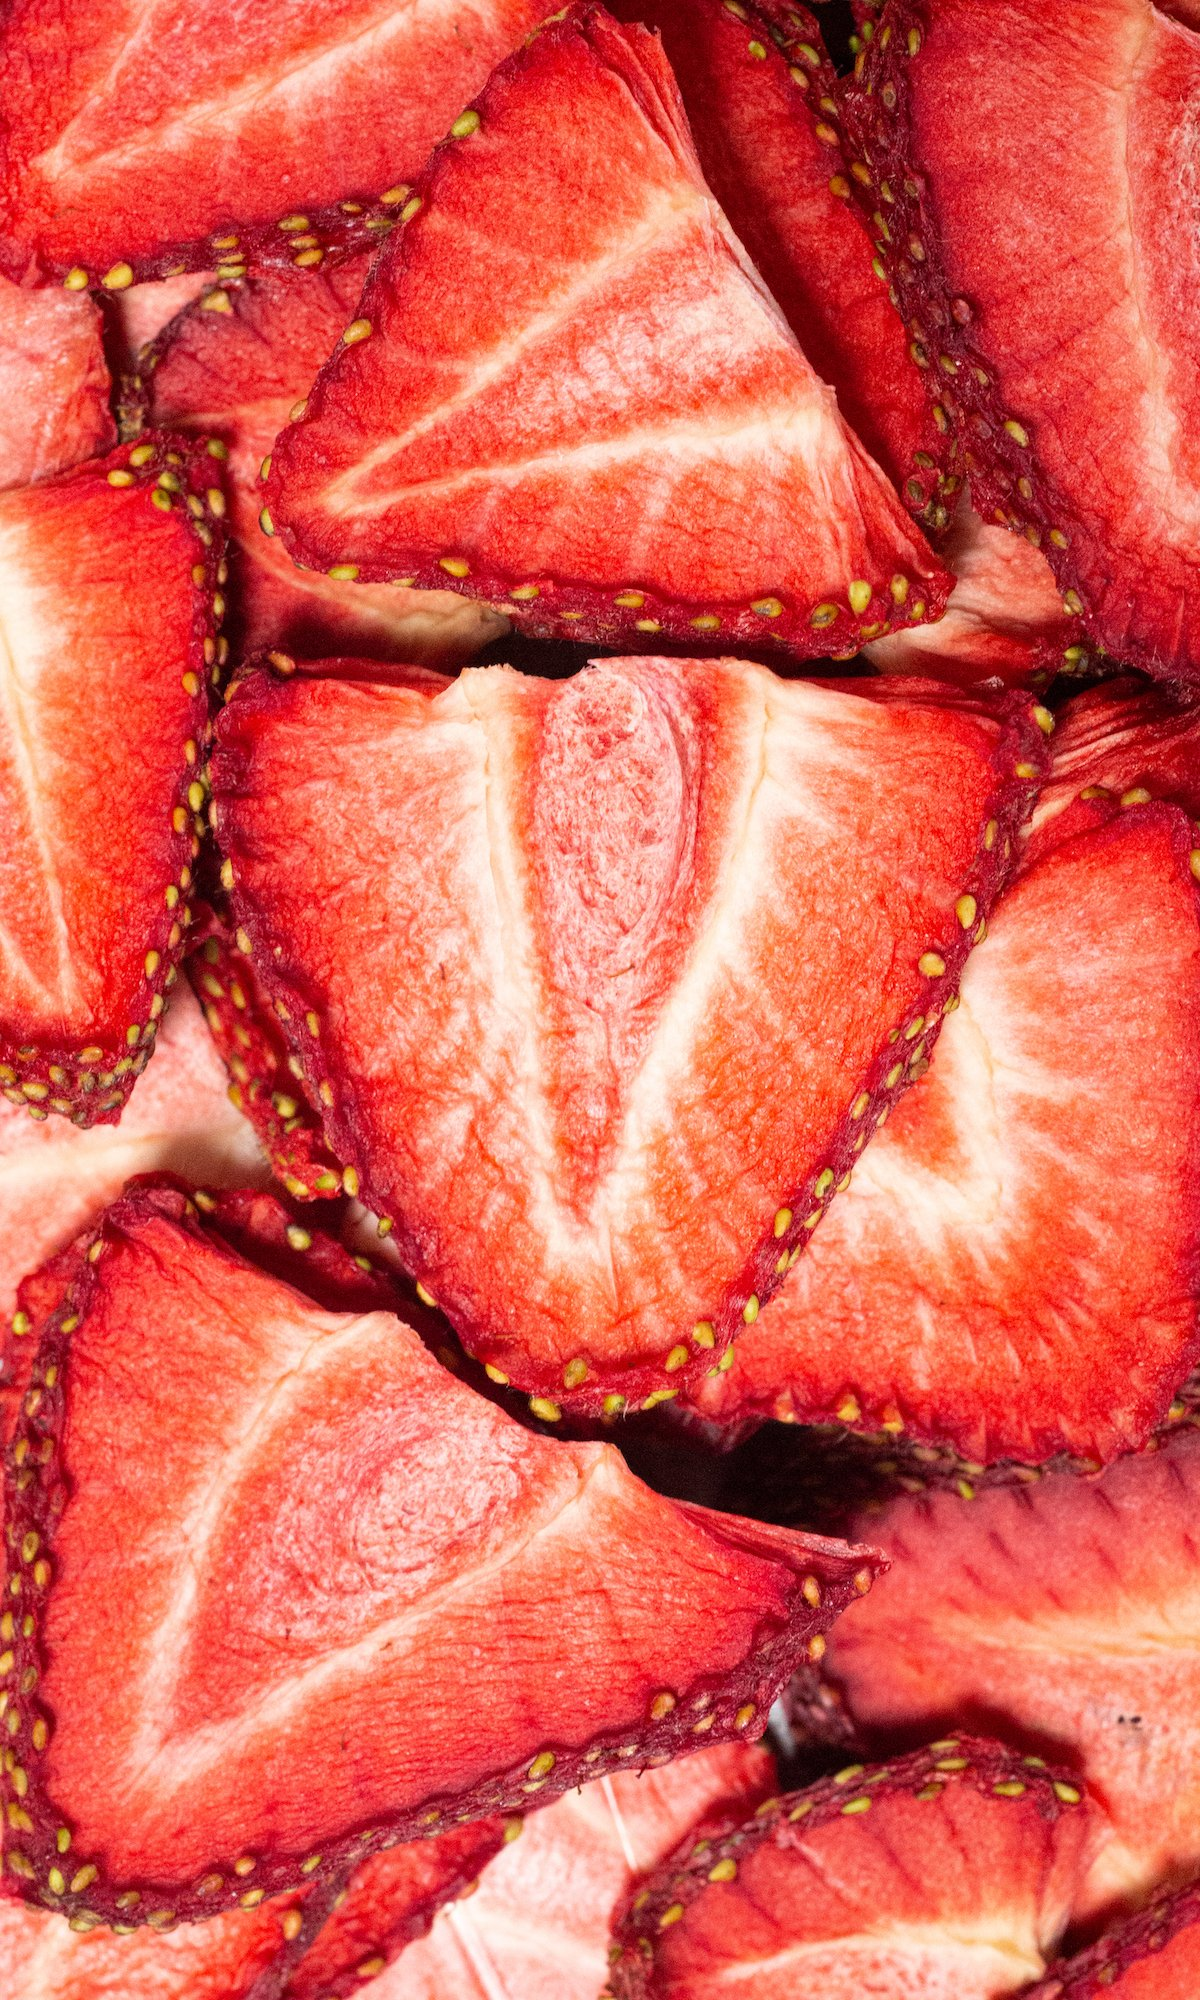 Overhead view of bright red strawberry slices that have been dehydrated.